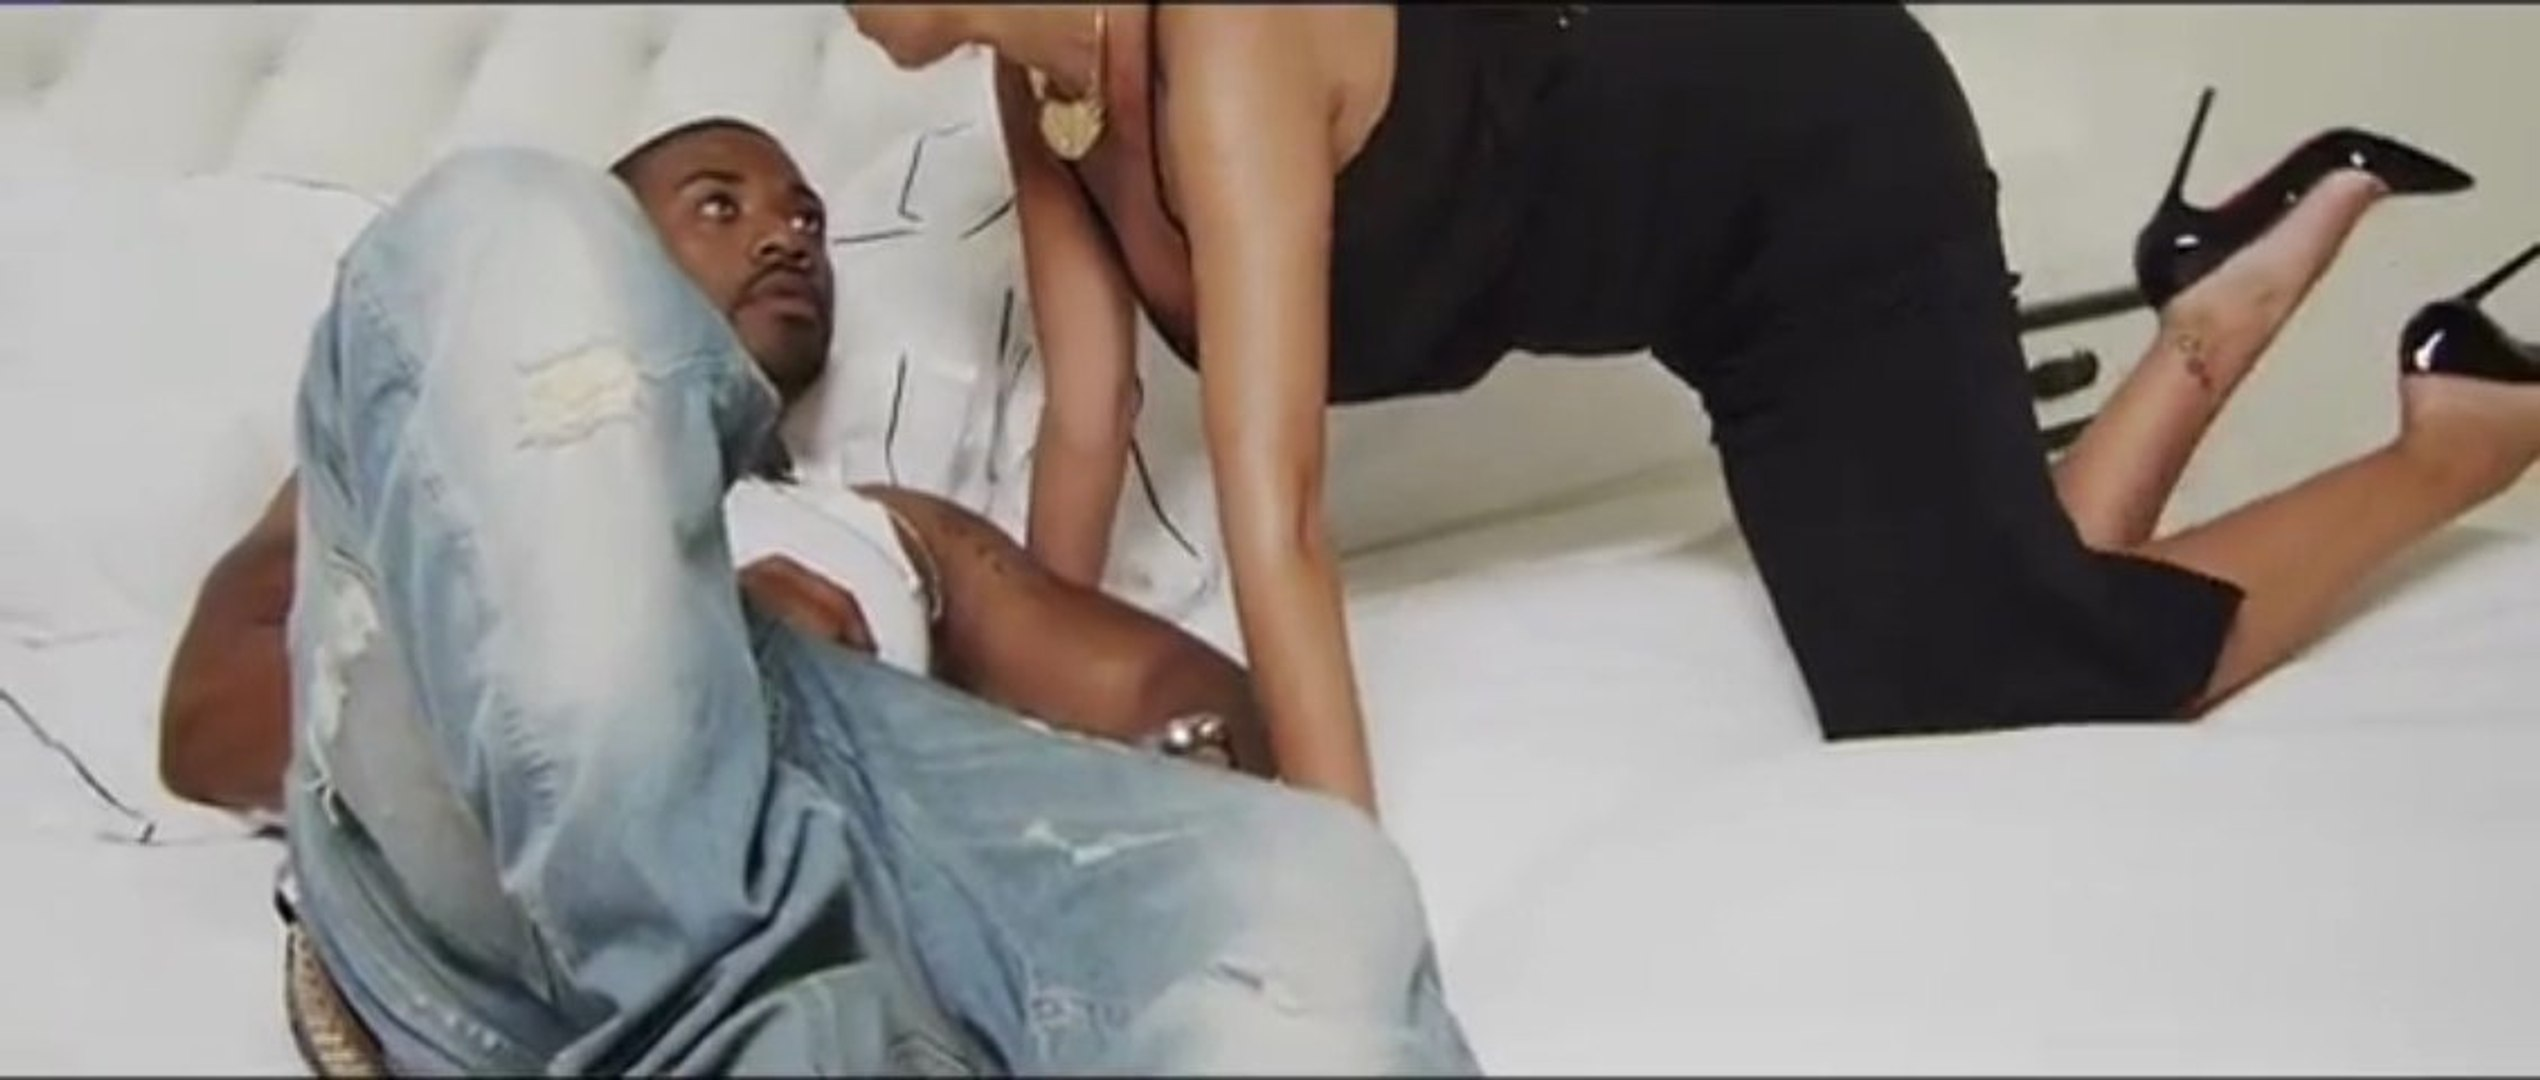 Ray J Feat. Bobby Brackins - I Hit It First  (Official Music Video)